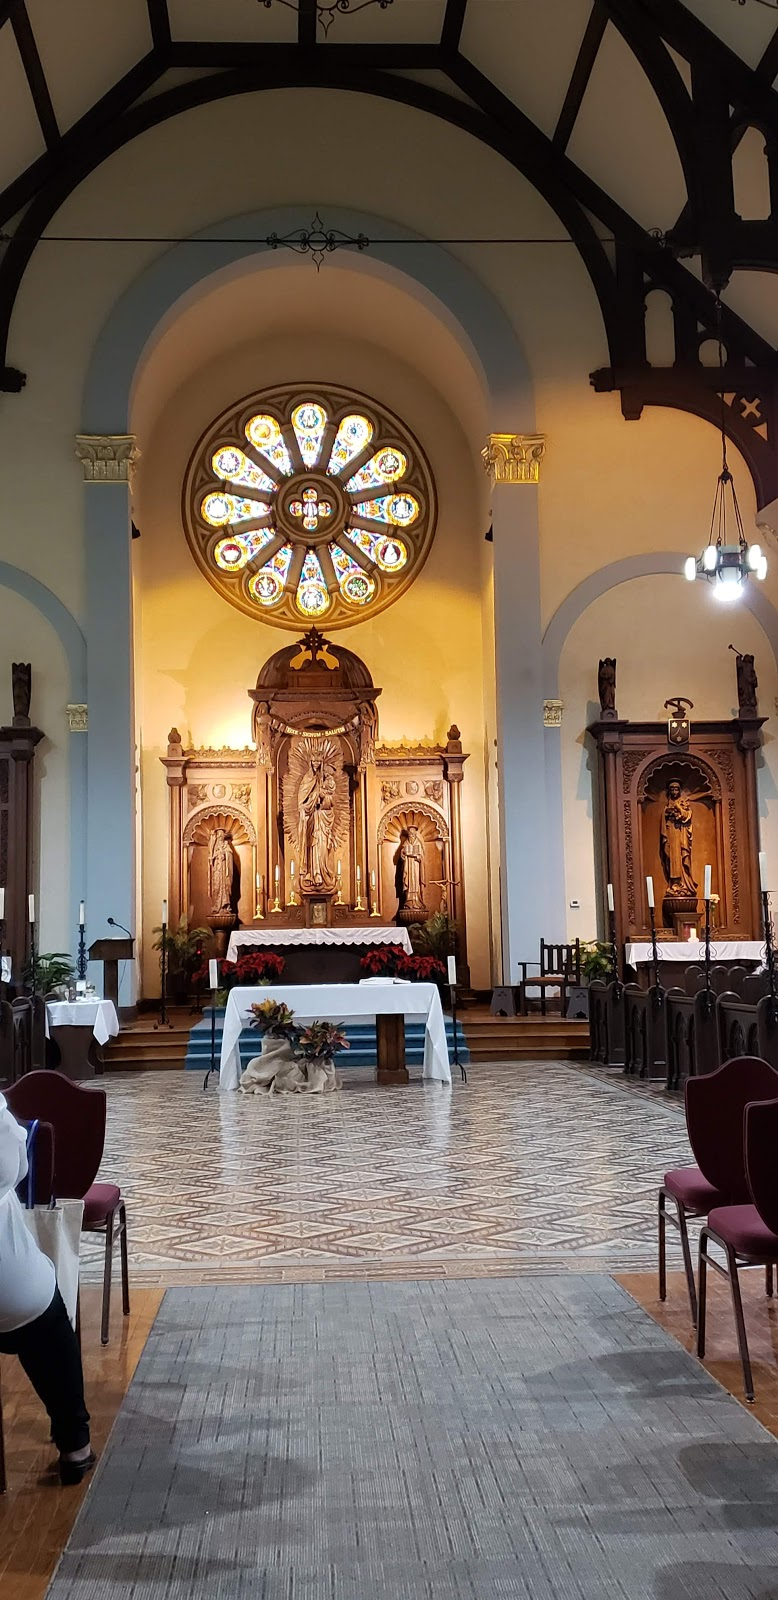 Our Lady of Peace | church | 6988 Stanley Ave, Niagara Falls, ON L2G 7B7, Canada | 9053583791 OR +1 905-358-3791